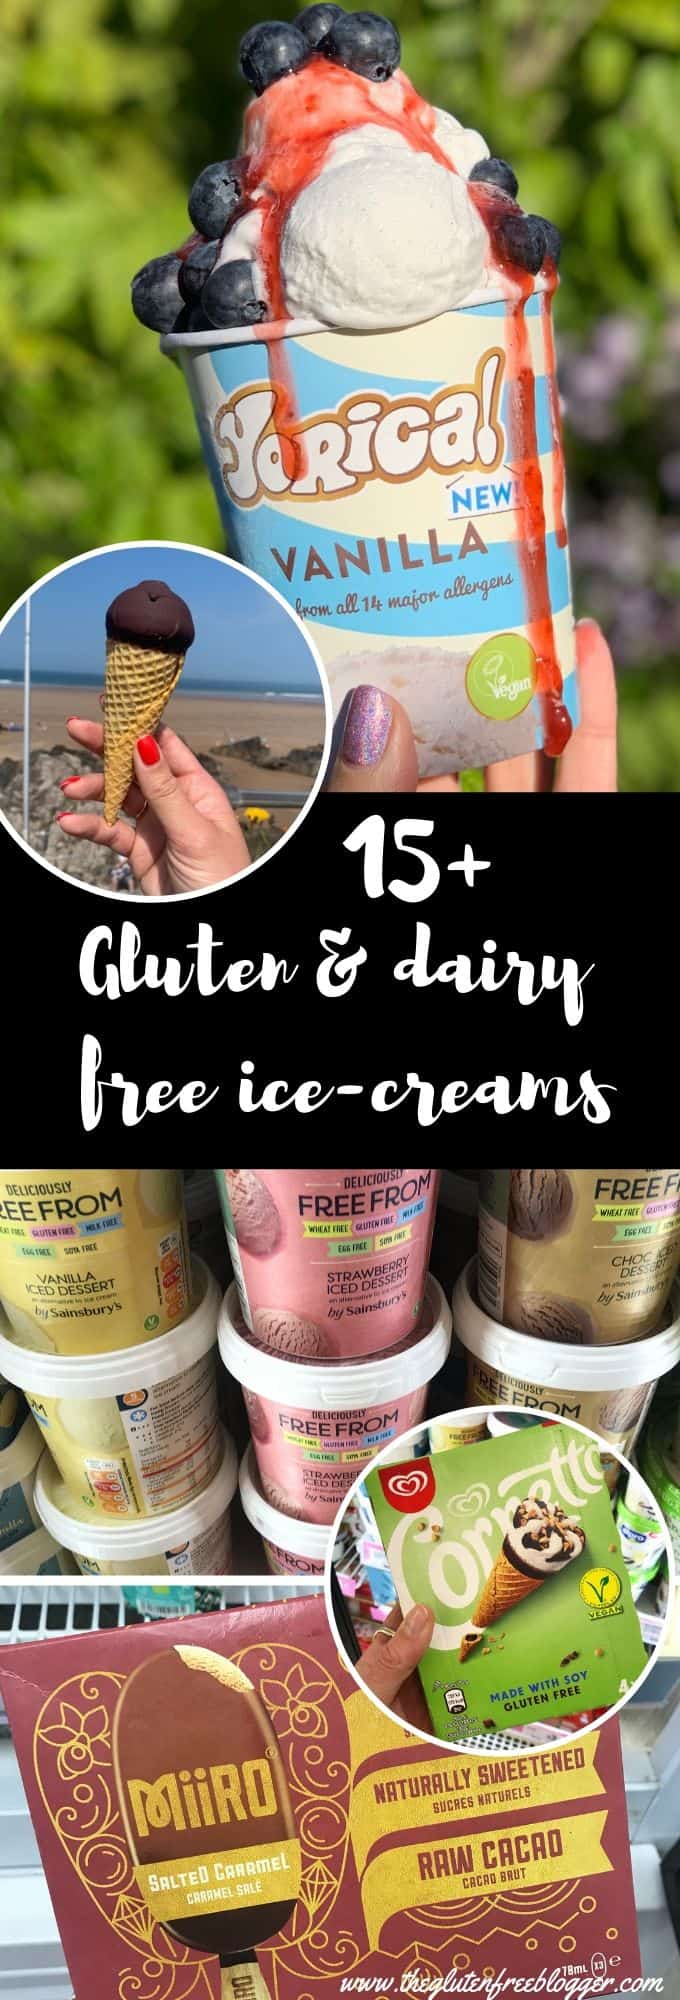 gluten free ice-creams and ice lollies UK 2019 - vegan ice-creams - cornetto - gluten and dairy free ice-creams